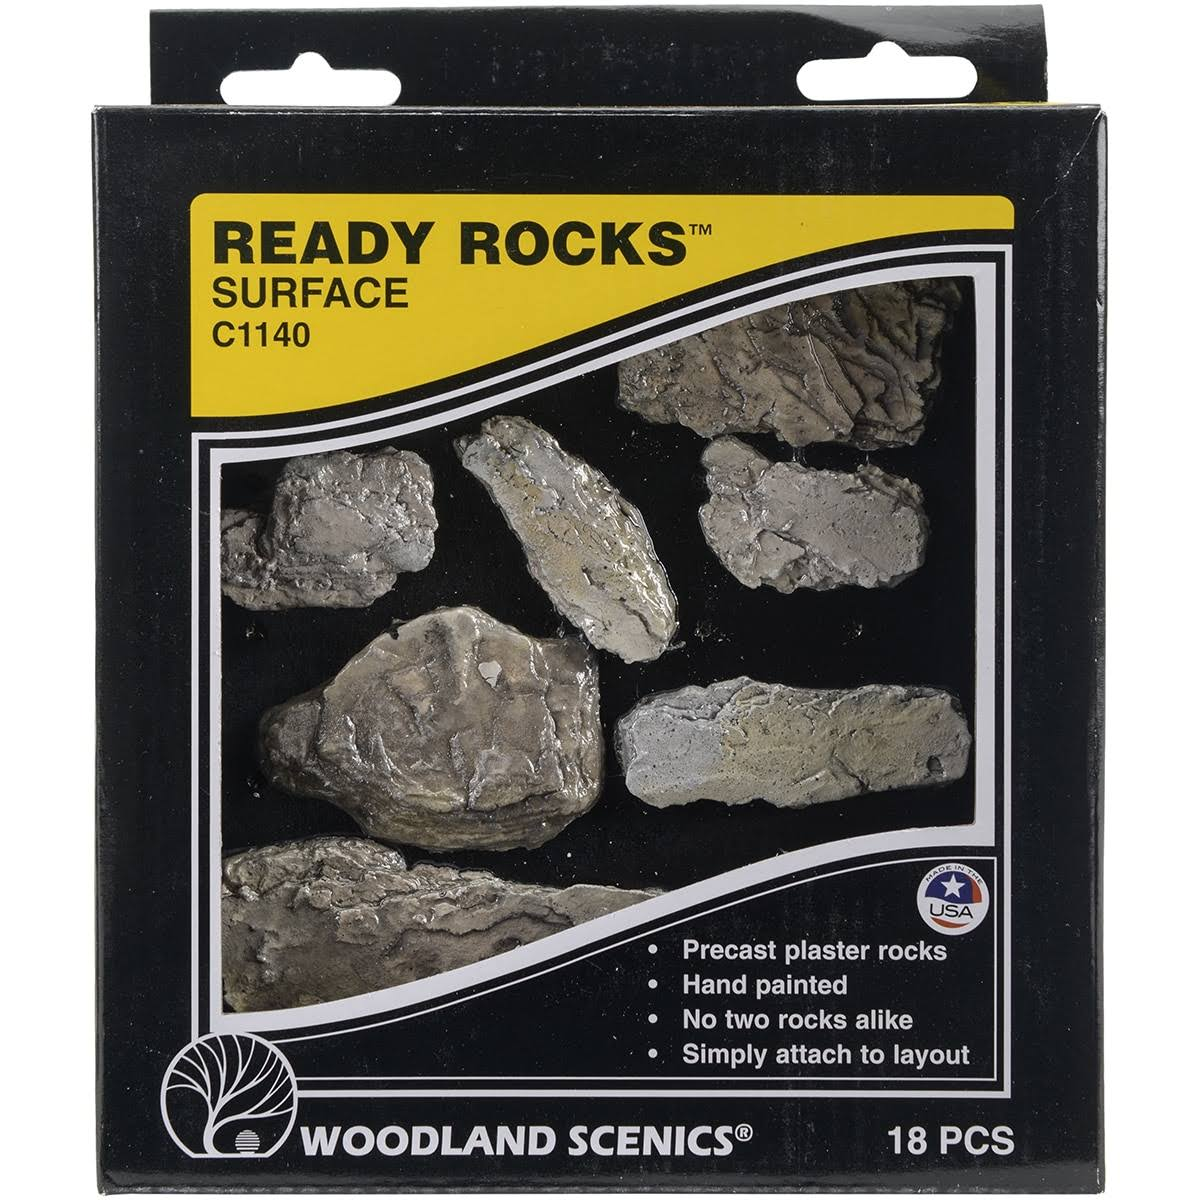 Woodland Scenics C1140 Ready Rocks - Surface, x18